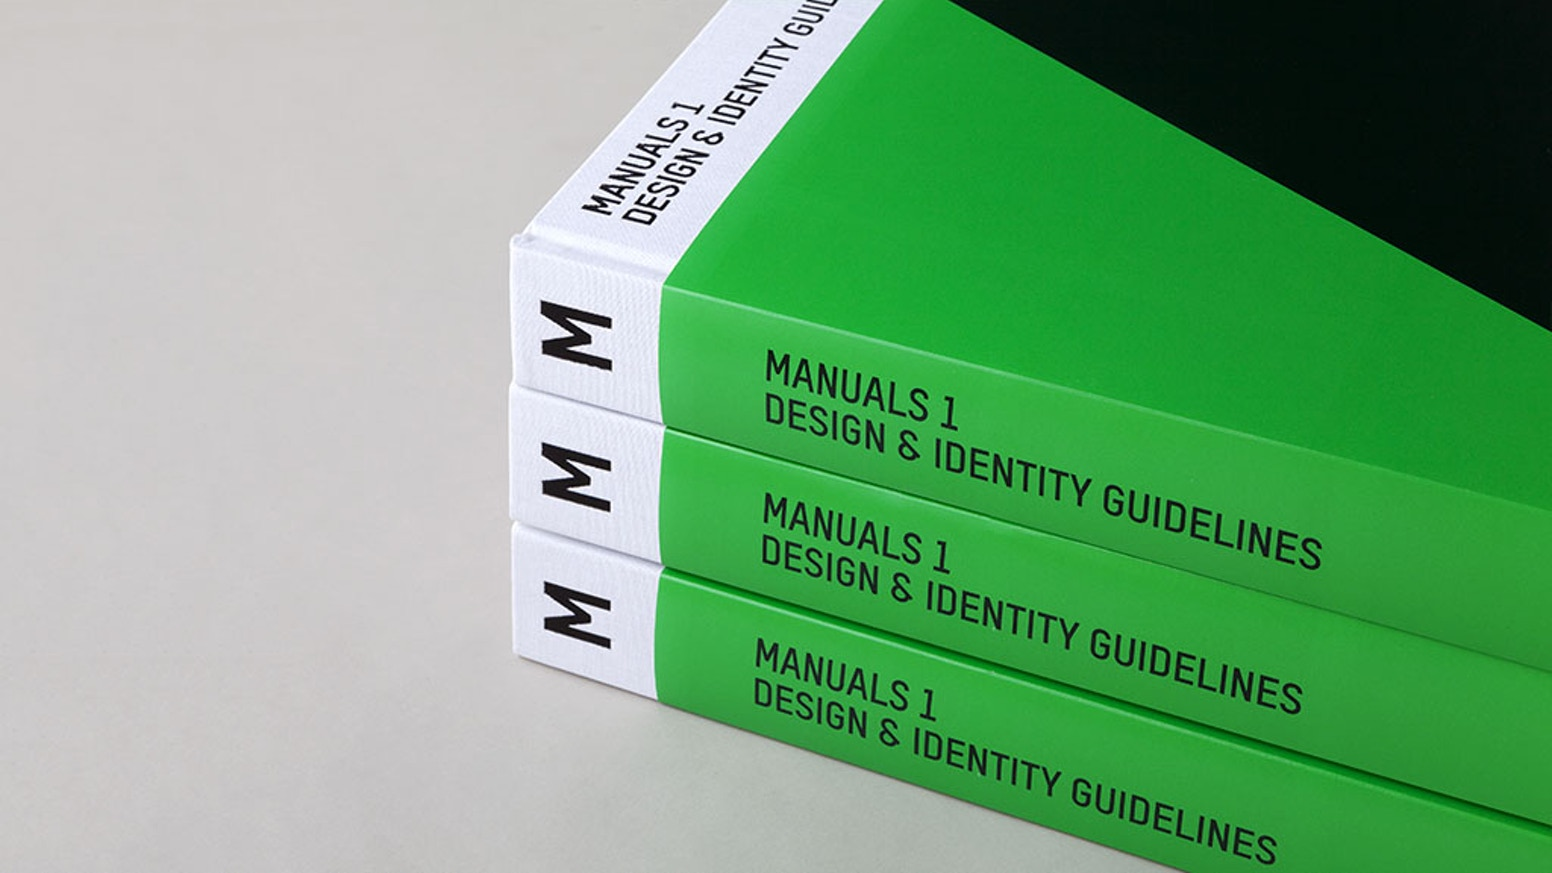 Manuals 1 sold out soon after it was published. Every day we get requests to republish. Now, with your help, we can!